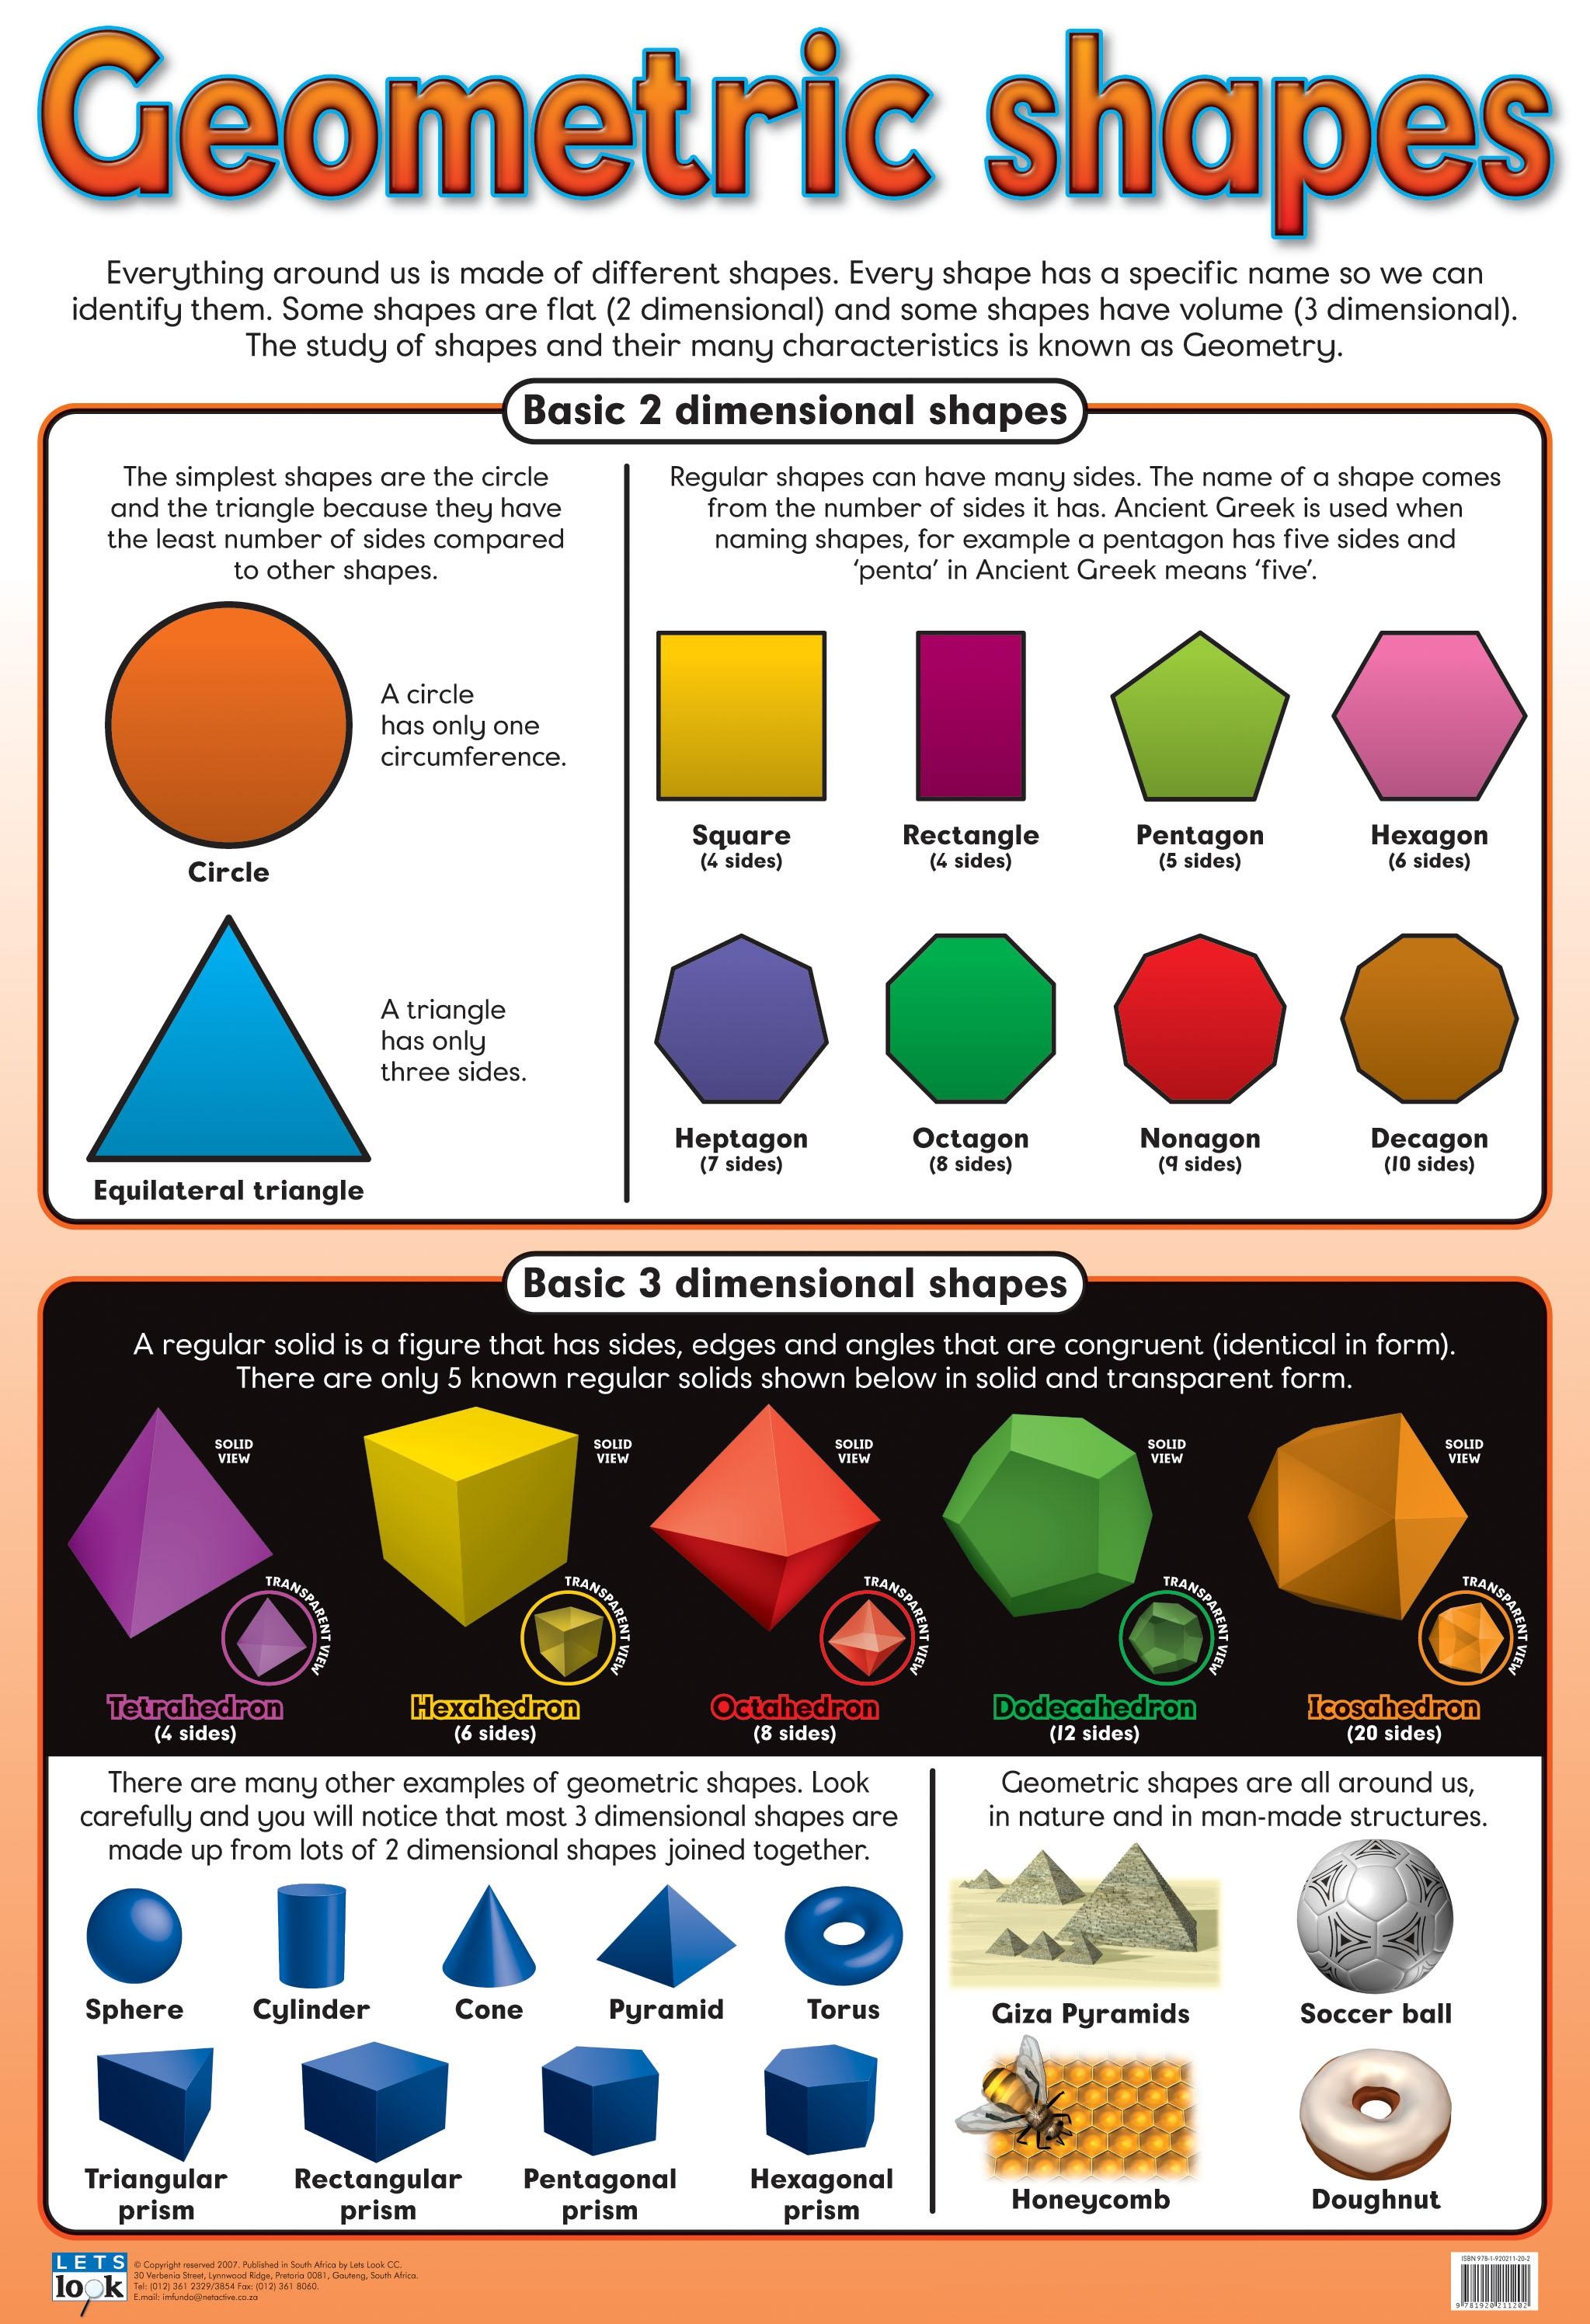 2 Dimensional Shapes Poster